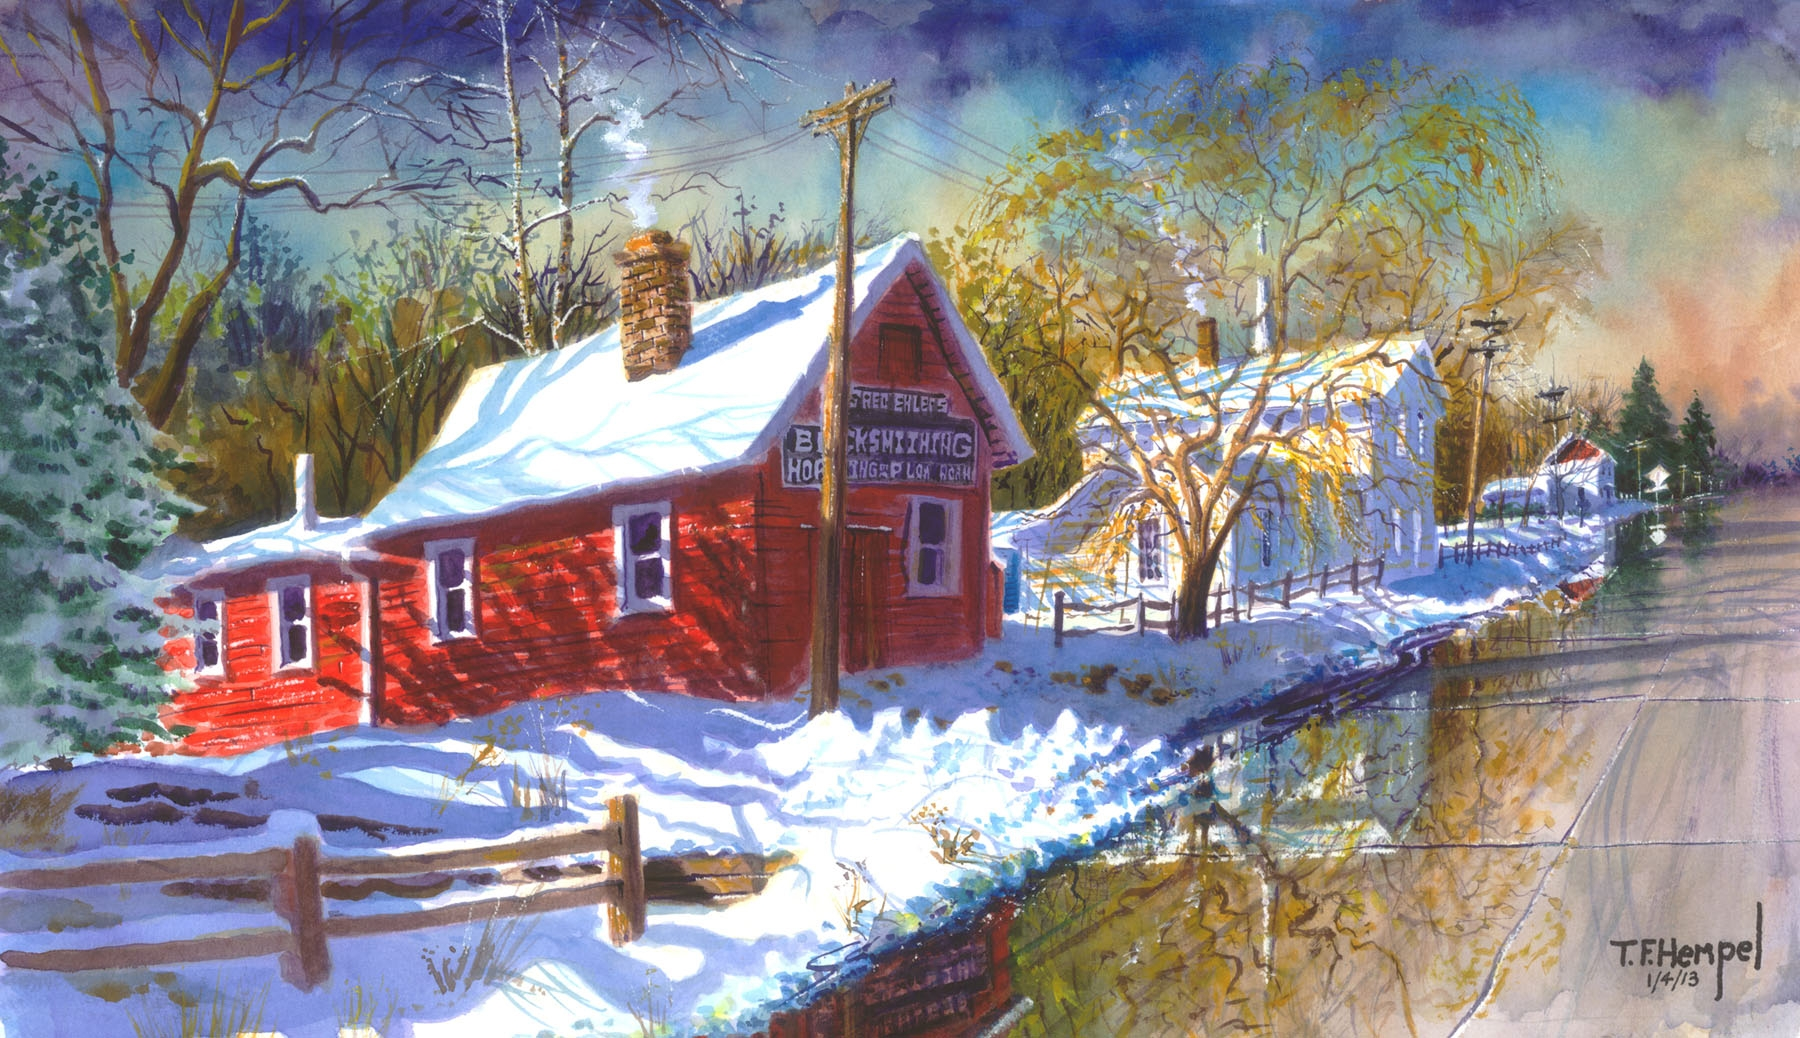 Pioneer Village T F Hempel Painter And Published Author